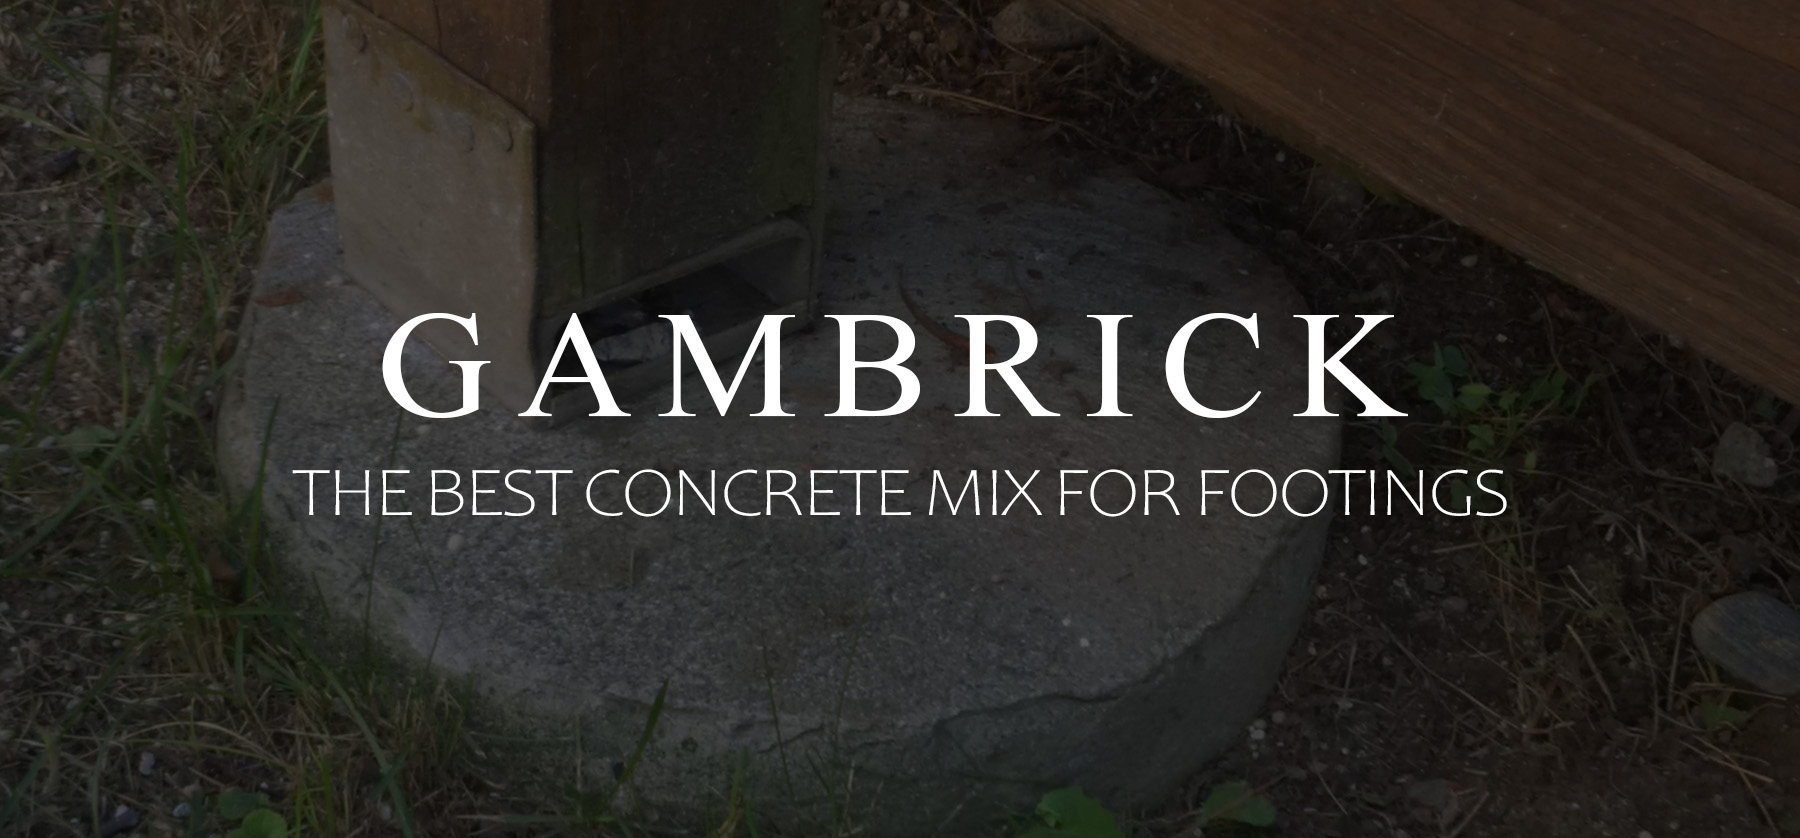 the best concrete mix for footings banner pic